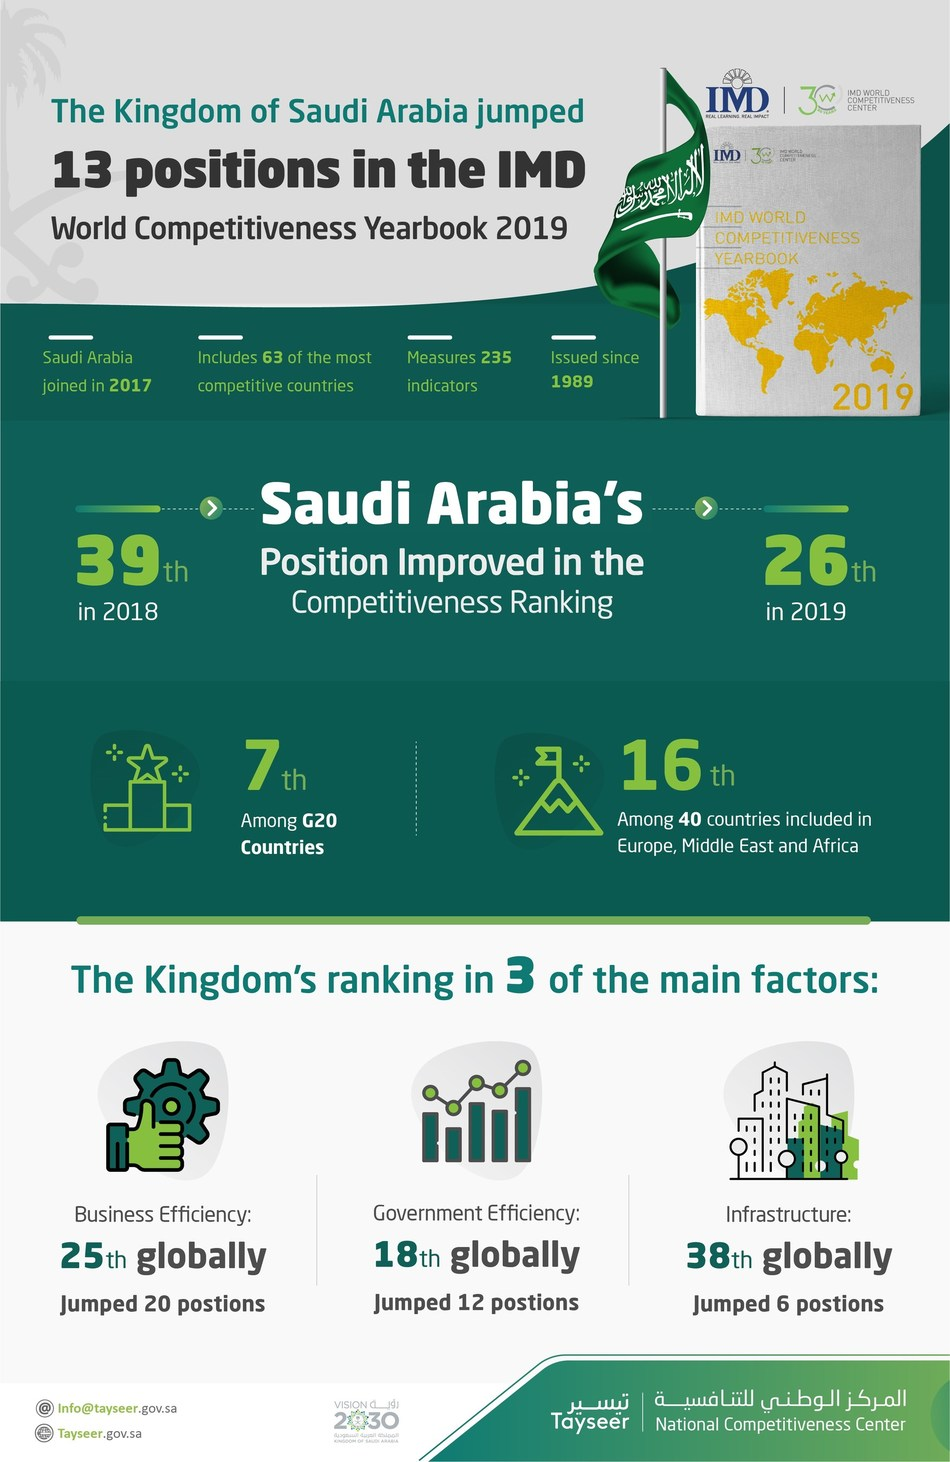 Saudi Arabia Jumps 13 Places to the 26th Position in the IMD World Competitiveness Yearbook 2019